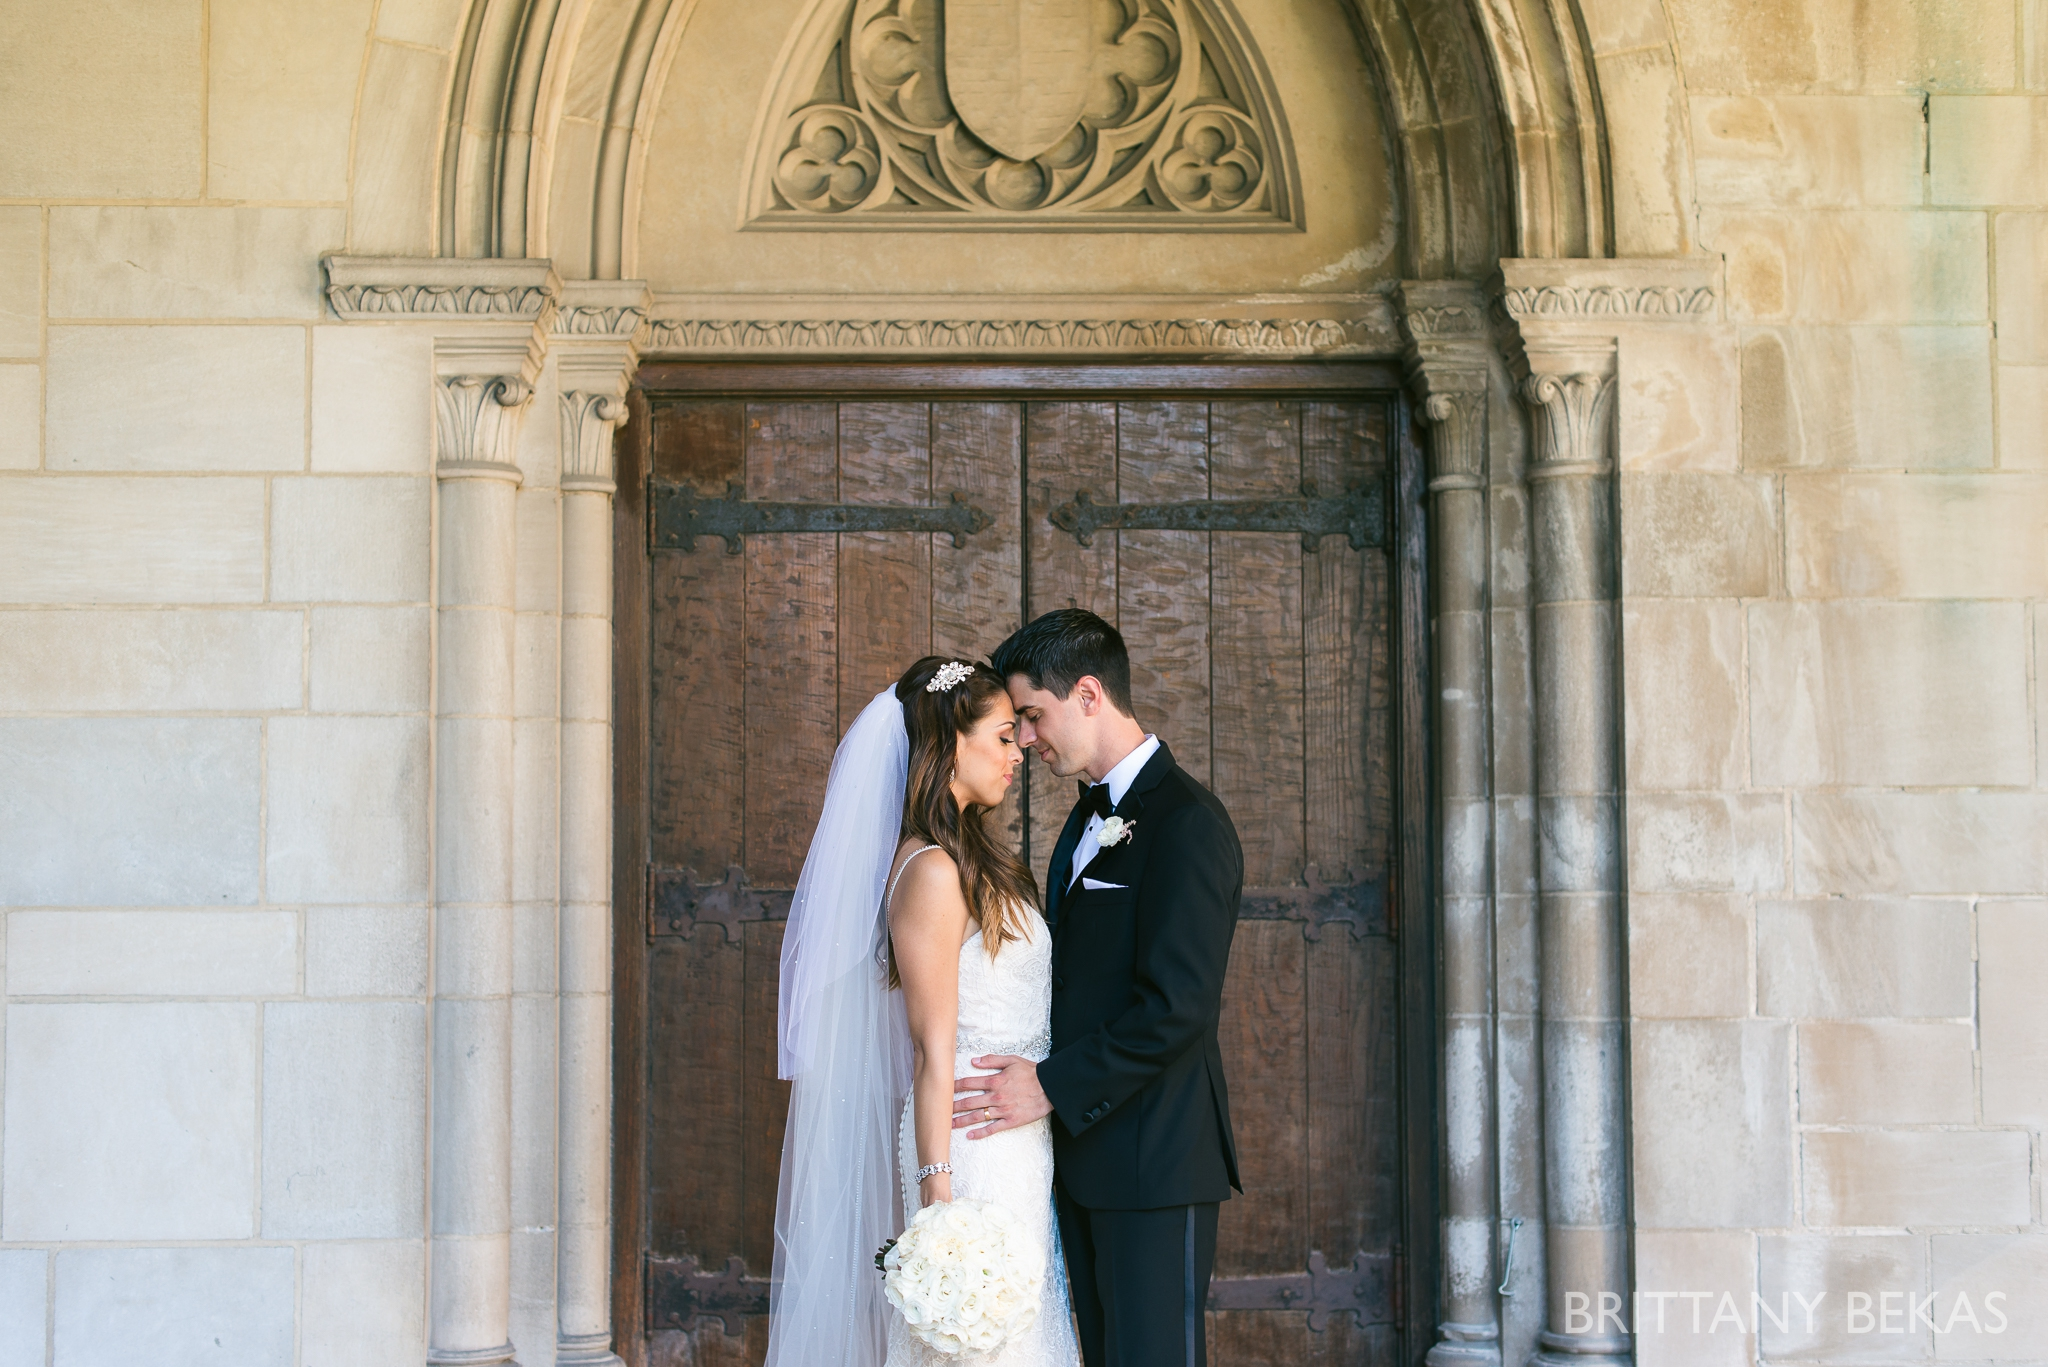 Chicago Wedding Photos St Edmunds + Concorde Banquets- Brittany Bekas Photography_0027